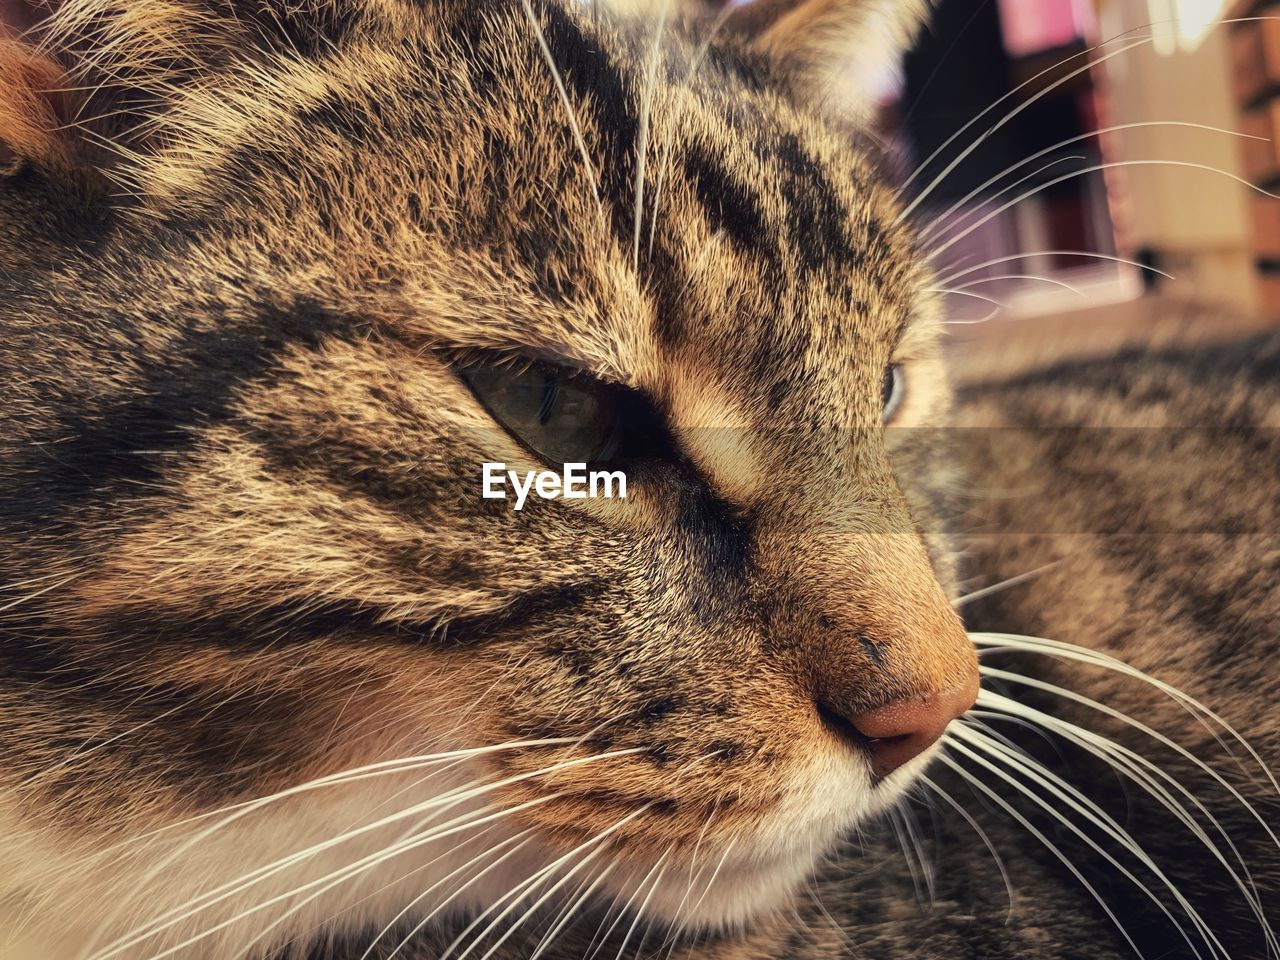 mammal, cat, feline, animal, animal themes, domestic animals, pets, domestic, one animal, domestic cat, vertebrate, whisker, close-up, no people, looking away, looking, animal body part, animal head, focus on foreground, relaxation, tabby, snout, animal eye